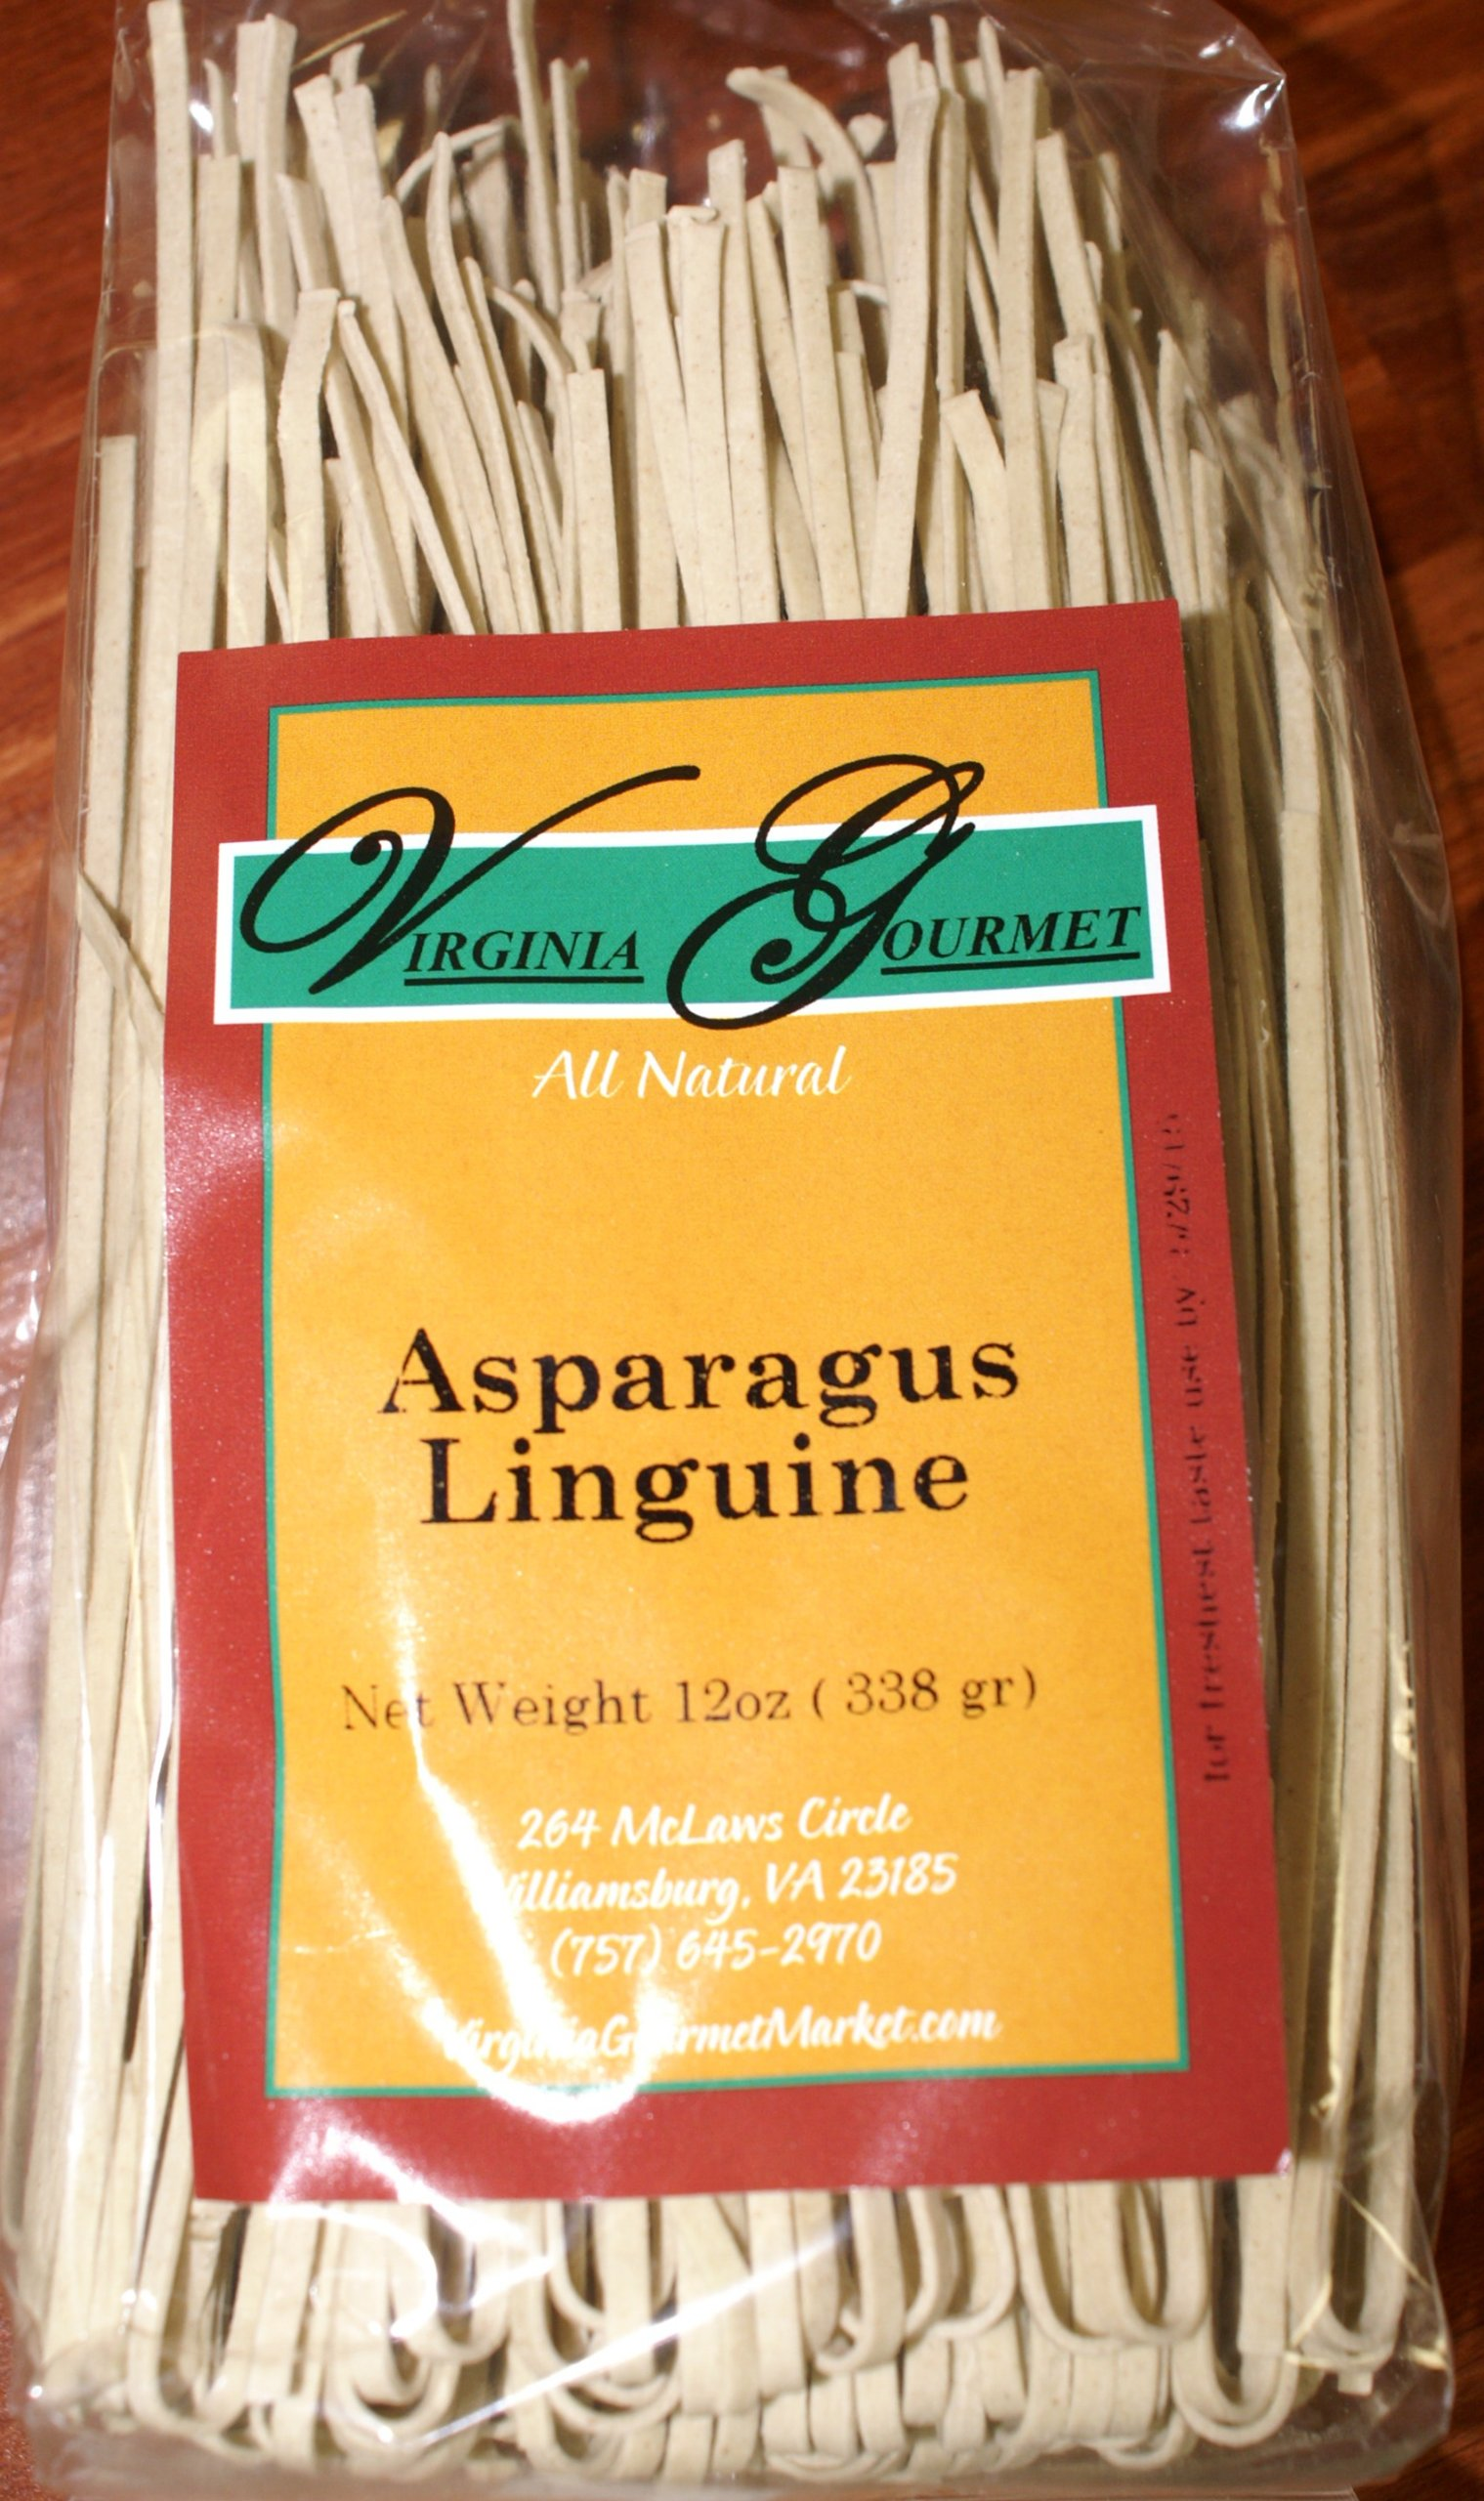 Virginia Gourmet Asparagus Linguine Vegan Pasta-6 PACK- All Natural Contains Wheat Flour Asparagus & Water